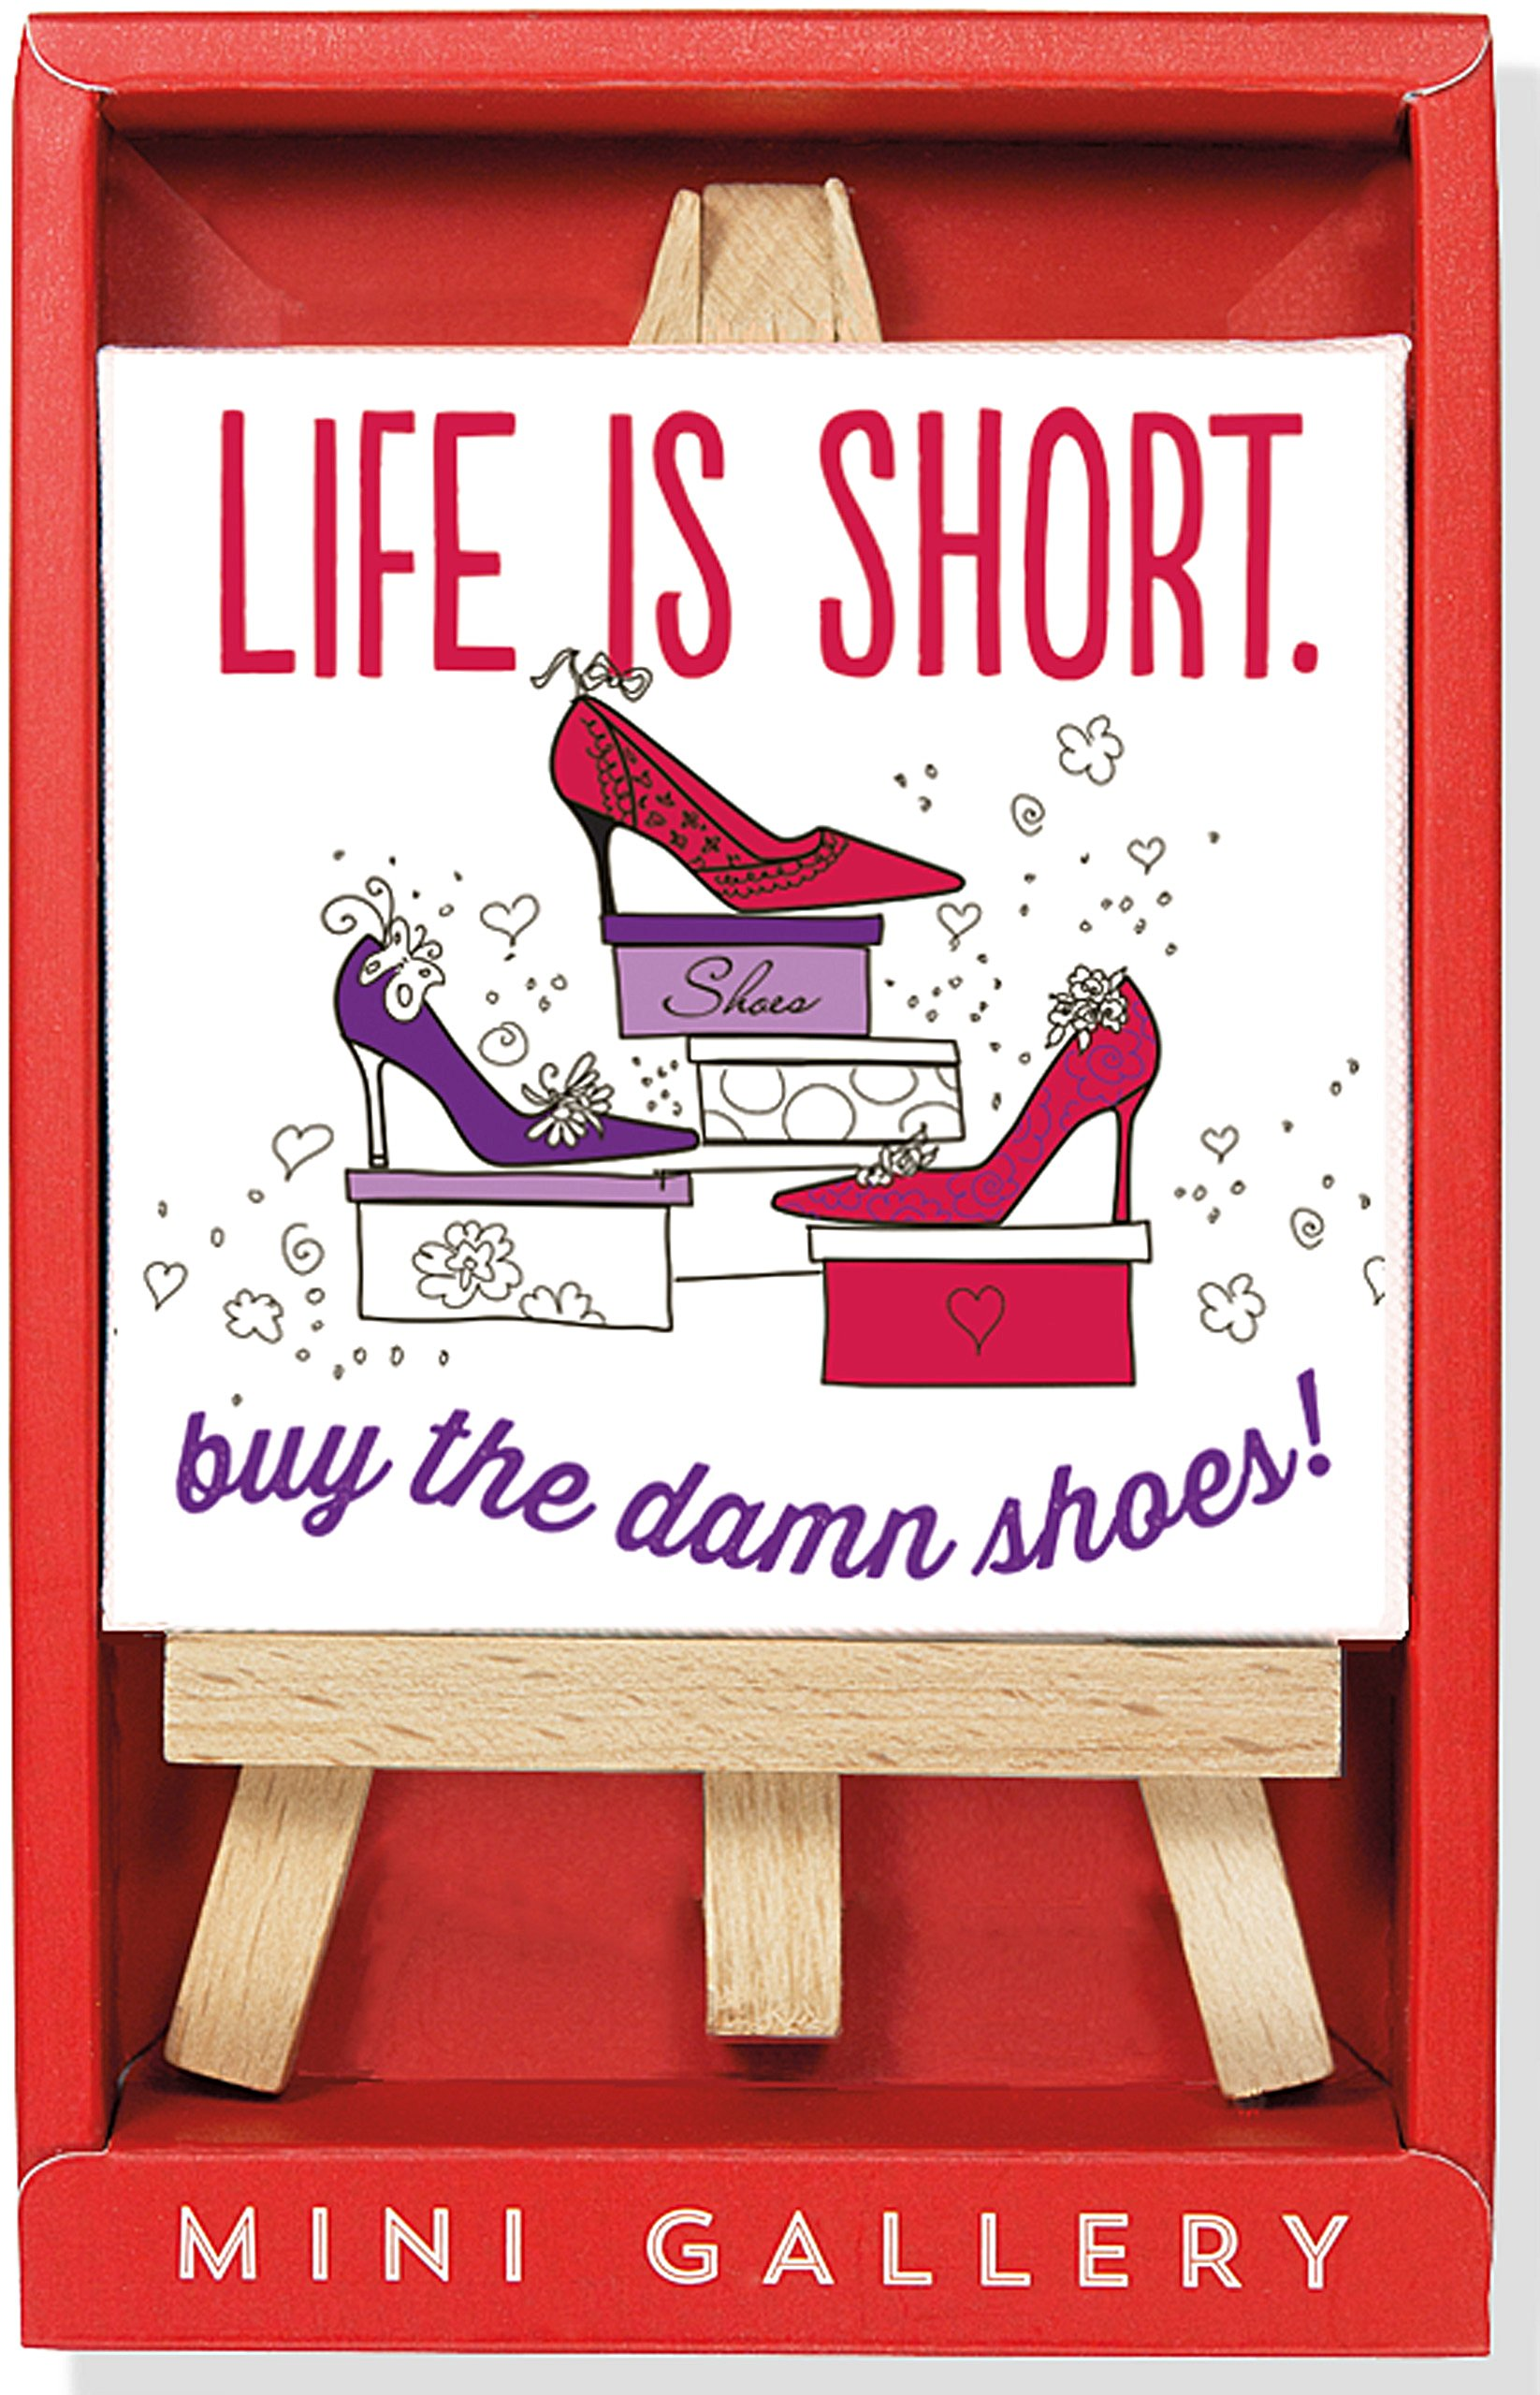 Life is Short Mini Gallery (artwork with mini easel) pdf